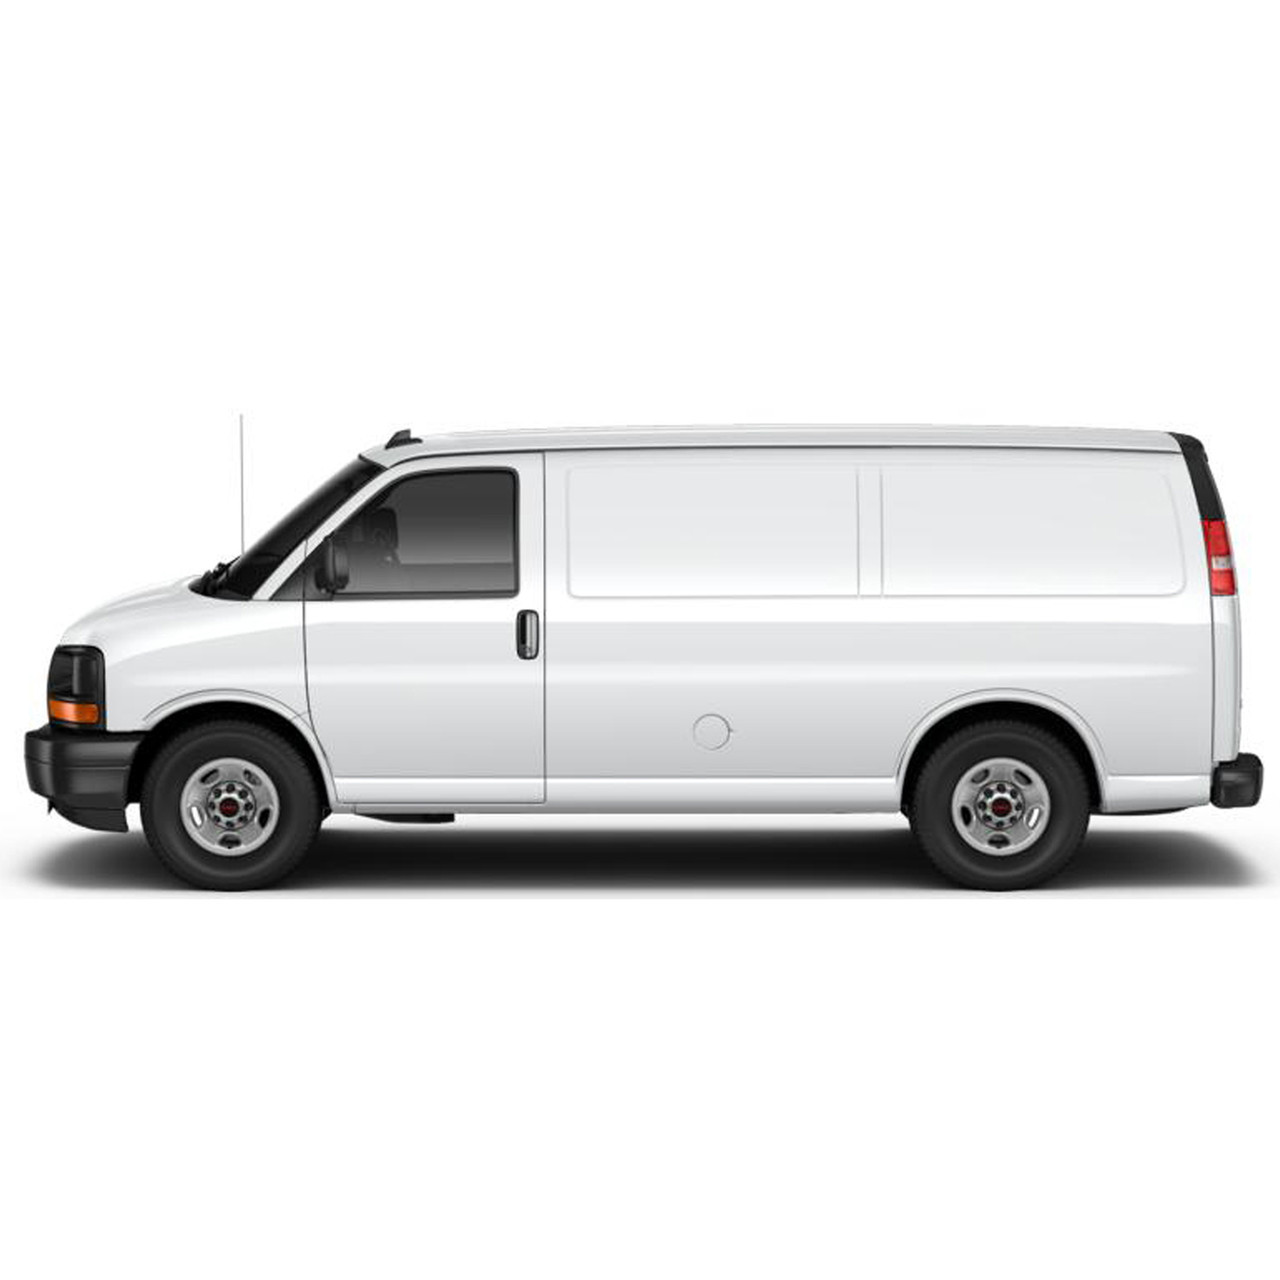 "GMC Savana - Regular Wheelbase (135"")"